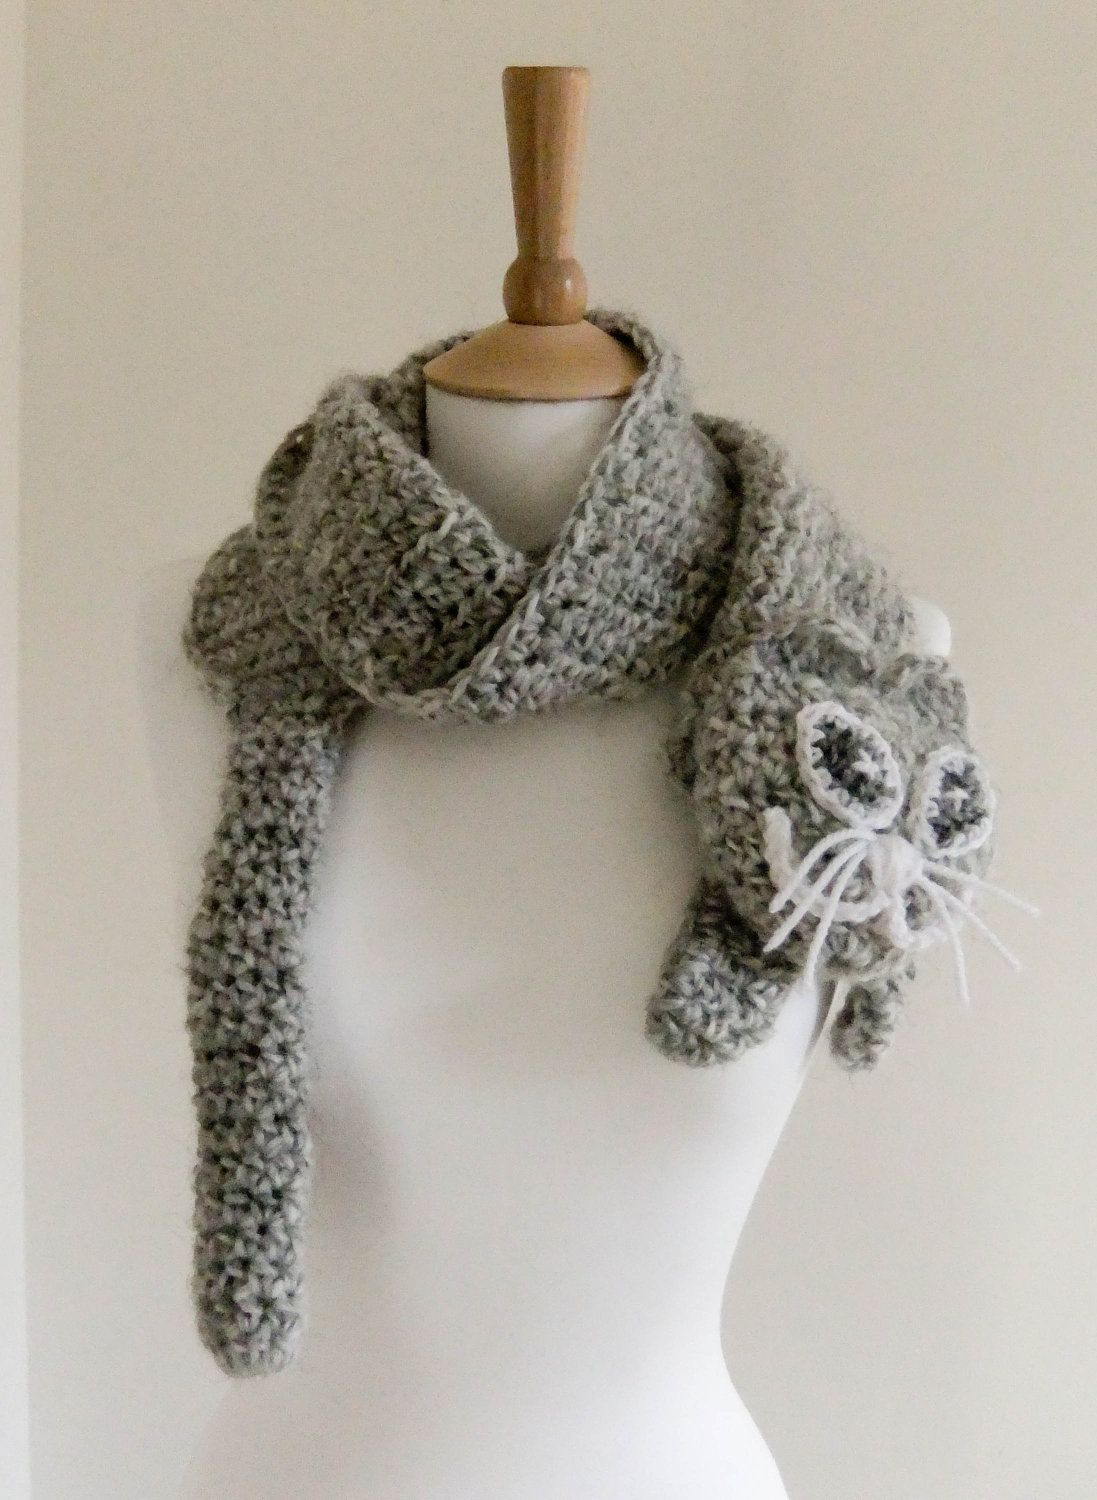 Crochet free cat projects pdf crochet pattern scarf kitty cute crochet free cat projects pdf crochet pattern scarf kitty cute cat grey gray neck warmer bankloansurffo Choice Image